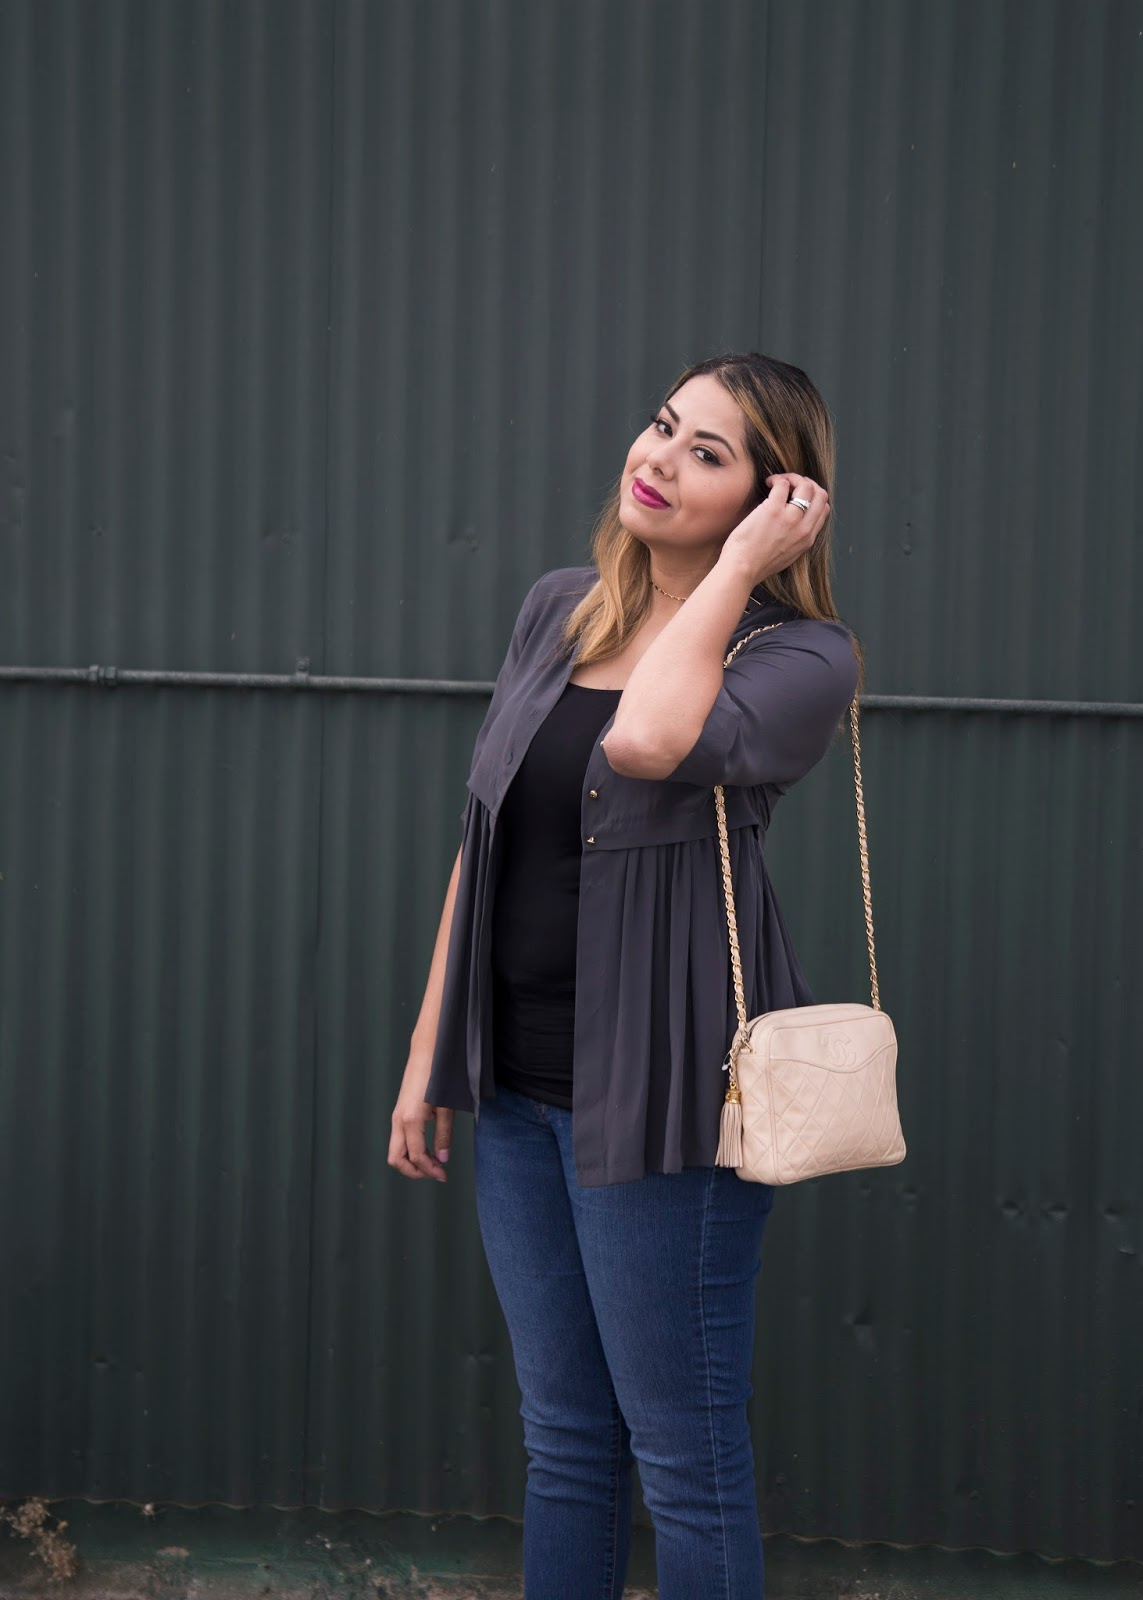 beige chanel bag outfit, how to wear a beige chanel bag, latina style blogger, socal fashion blogger